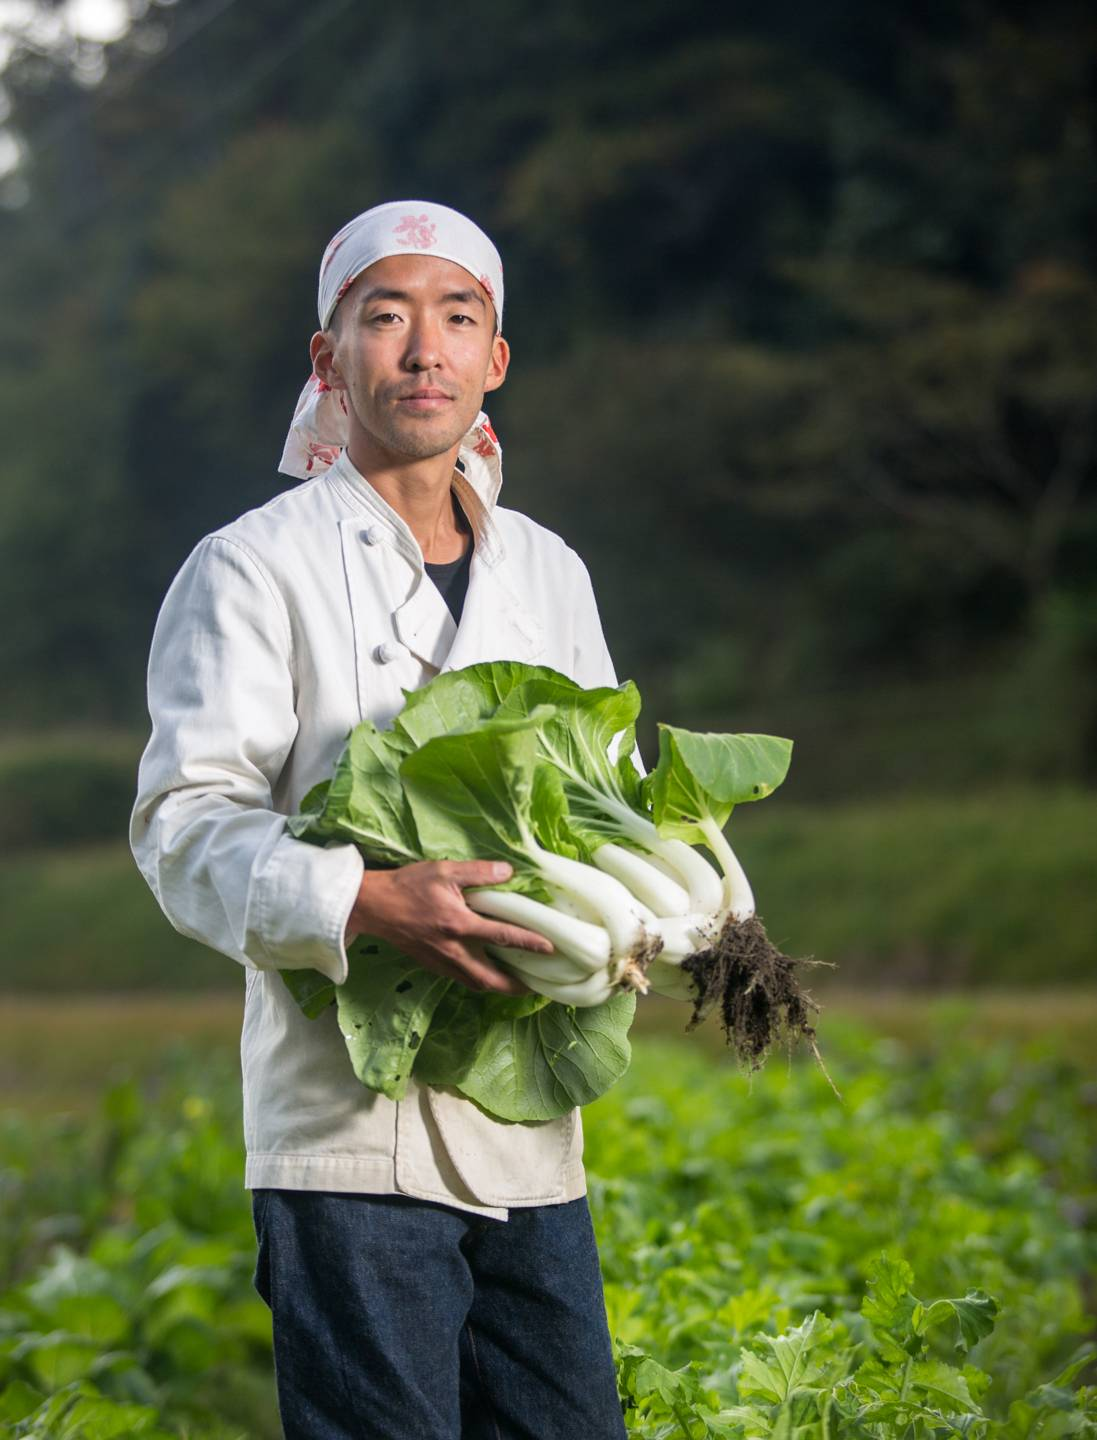 Yoshihara-san is the owner and chef of the quaint little farm and bakery tucked away in Mitsu.